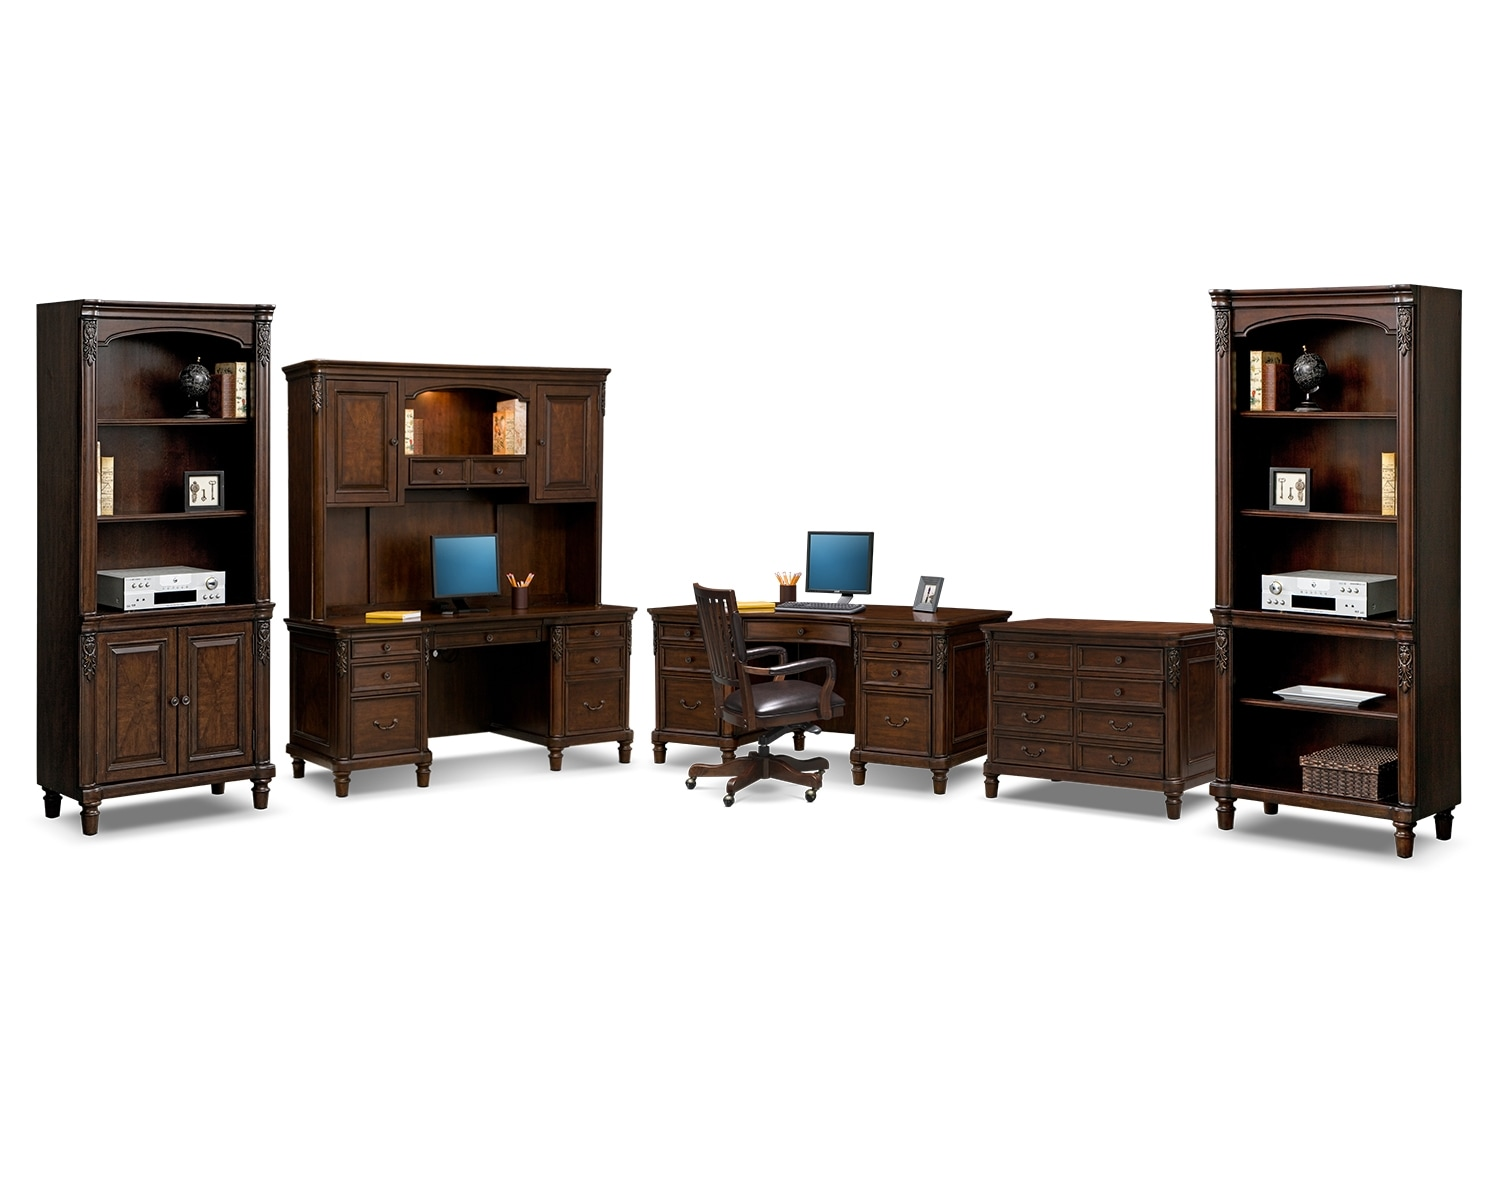 Home Office Furniture | Value City | Value City Furniture and ...